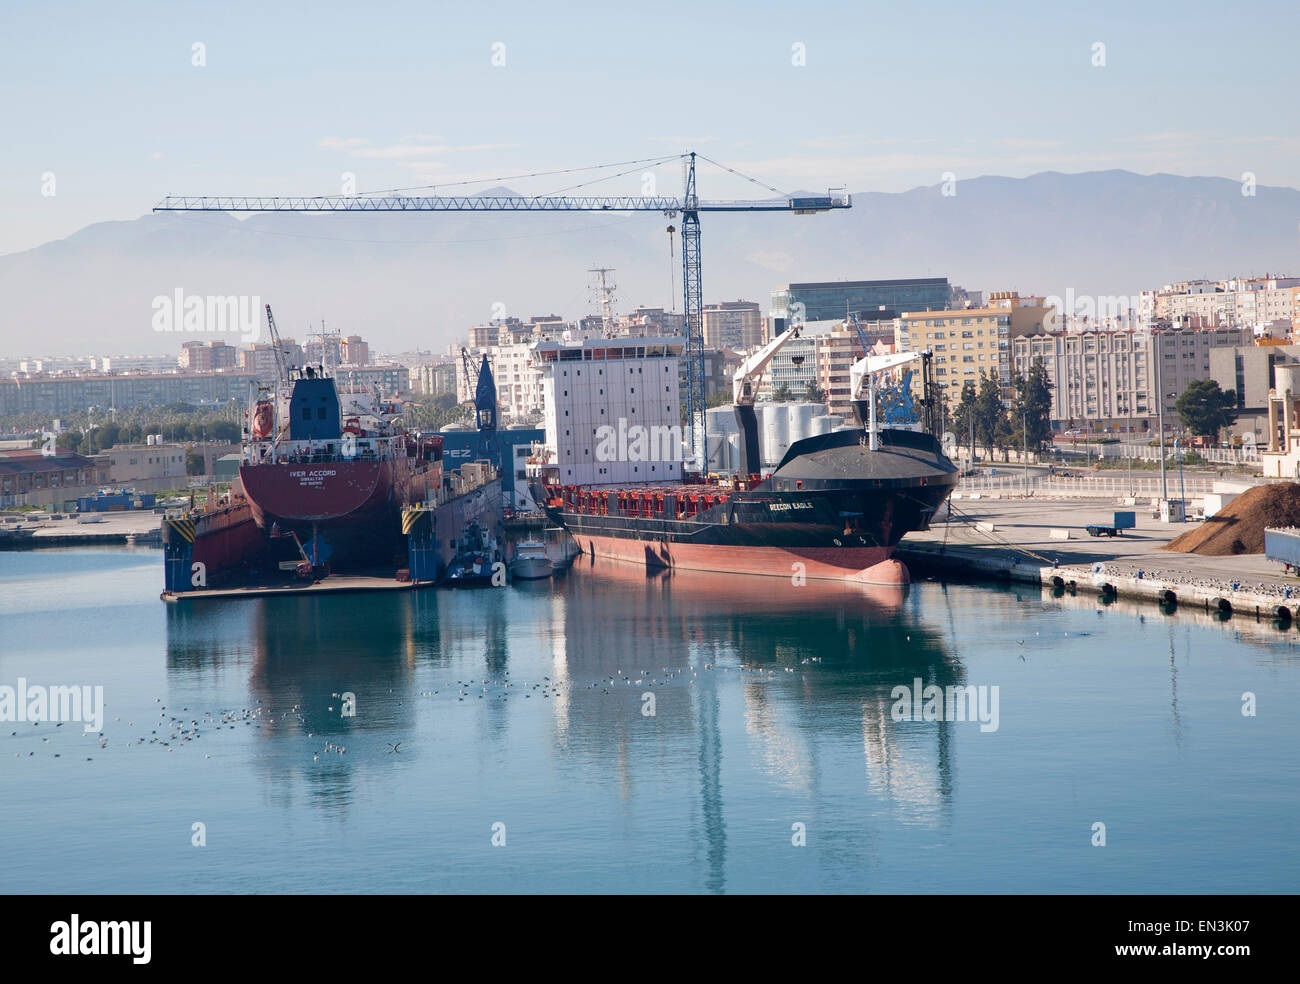 Cargo ships in the port of Malaga, Spain - Stock Image